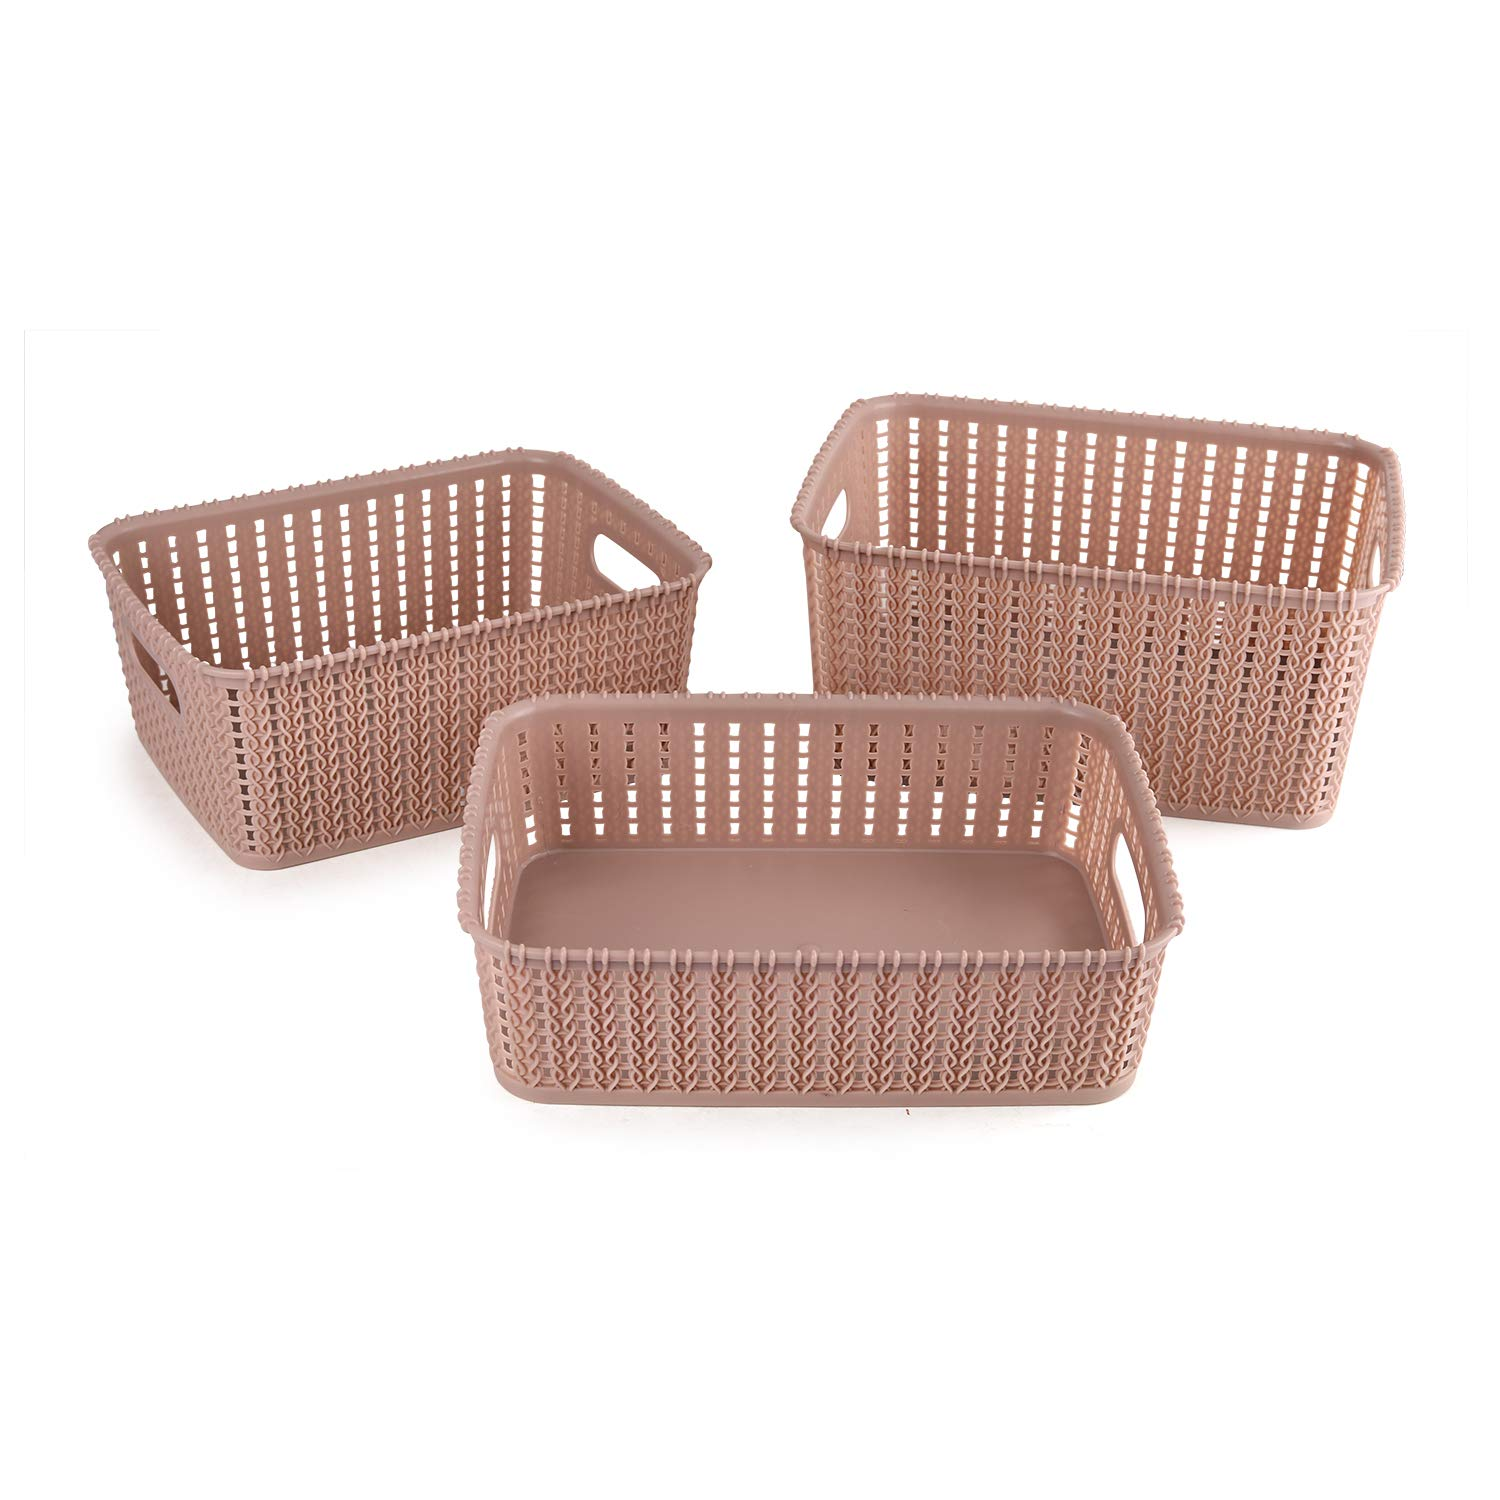 Cello Style Knit Small Basket Without Lid, Set of 3